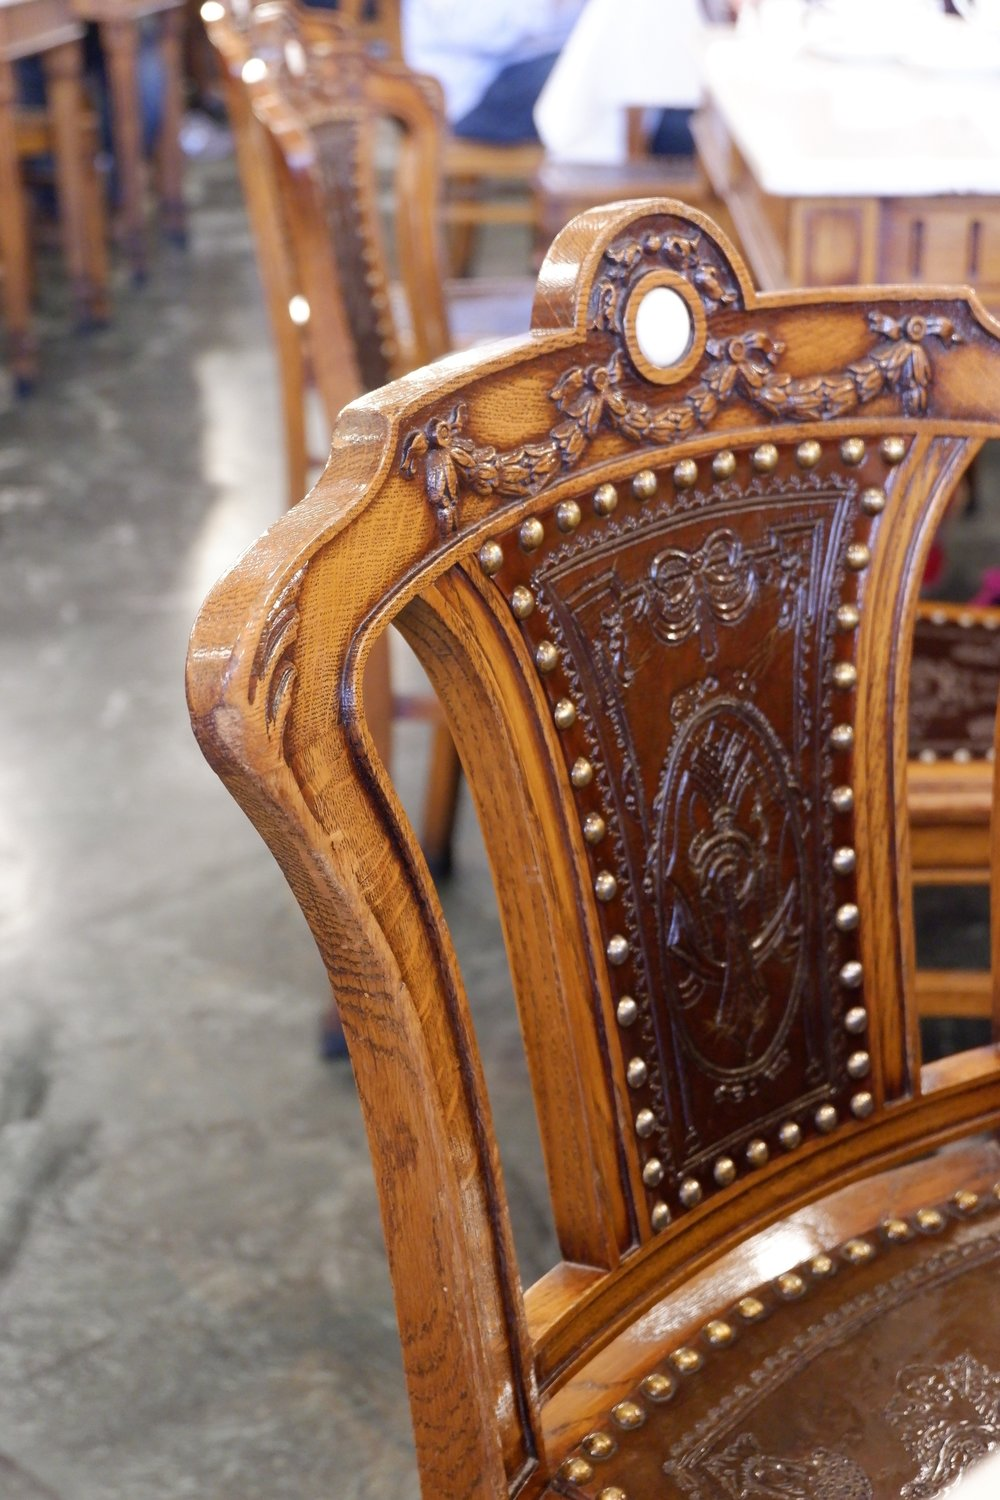 Close-up-of-wooden-chair-at-majestic-cafe